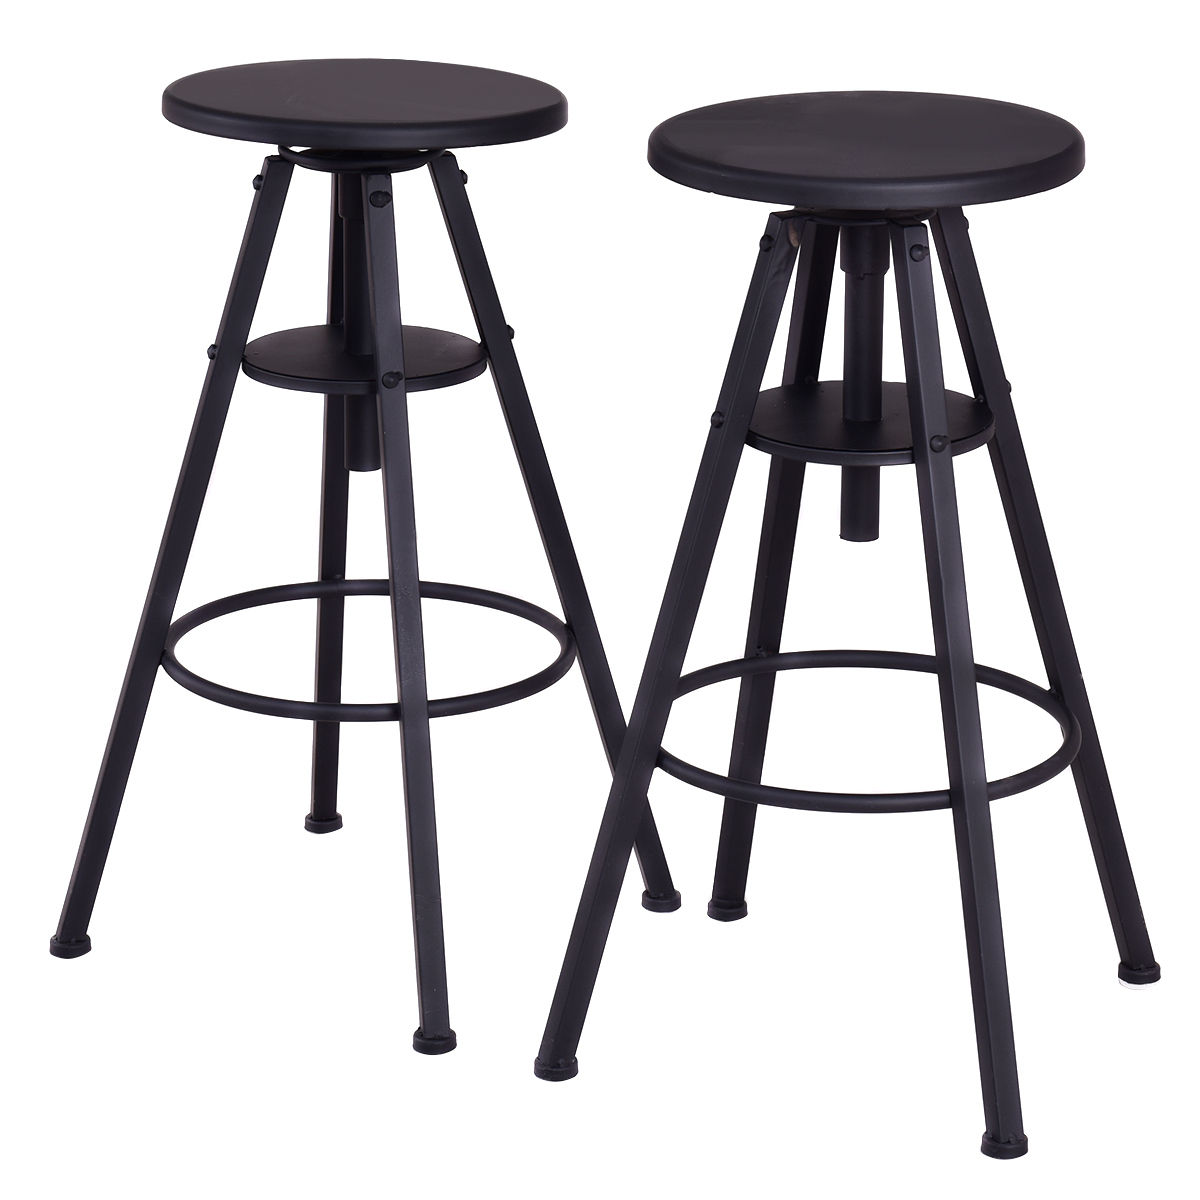 Aliexpress Giantex Set Of 2 Vintage Bar Stools Modern Height Adjule Metal Design Pub Chairs Simple Furniture Hw55117 From Reliable